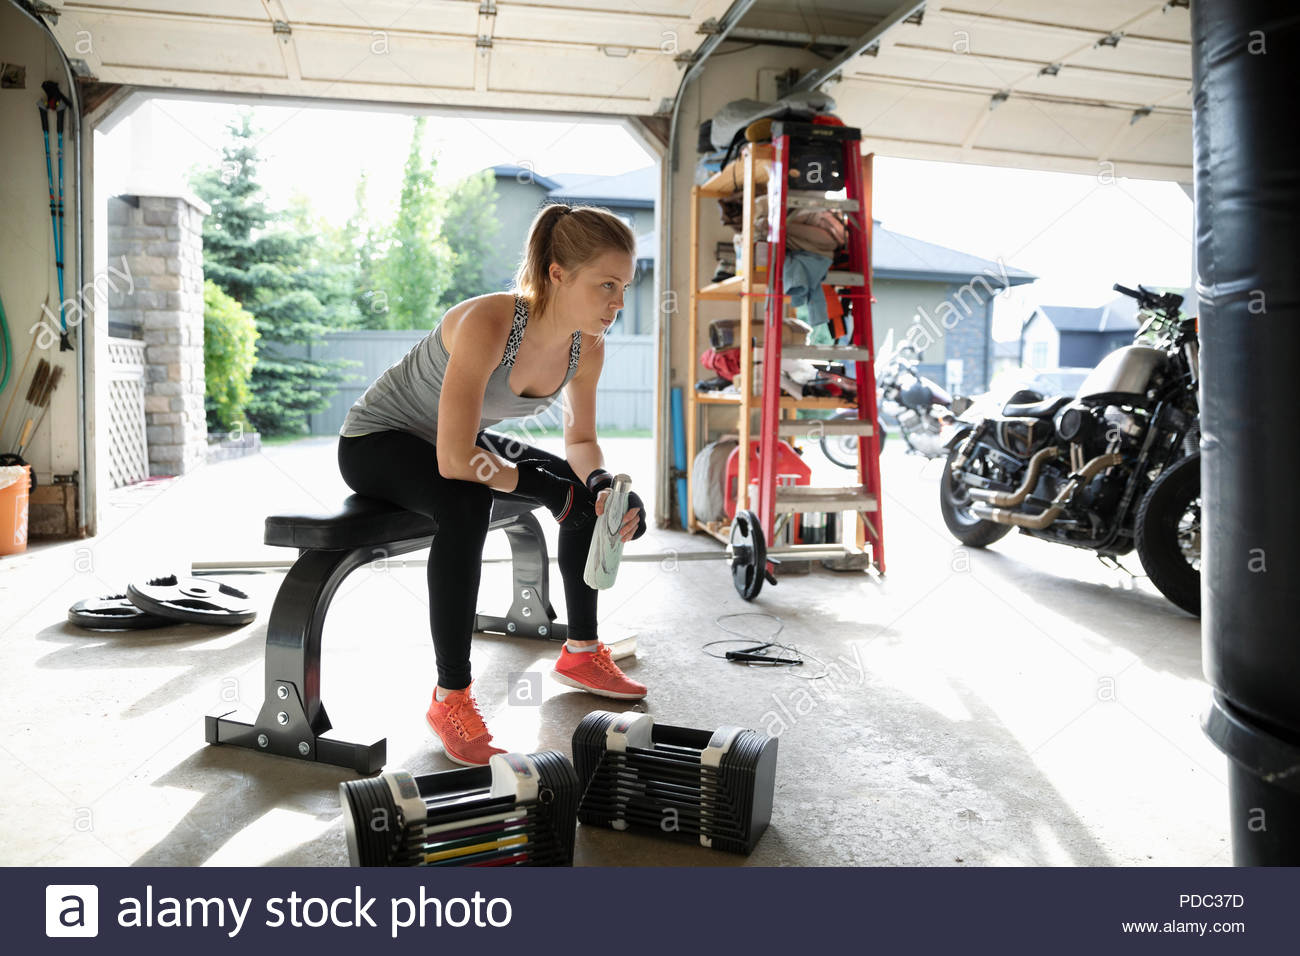 Young woman weightlifting, resting in garage - Stock Image